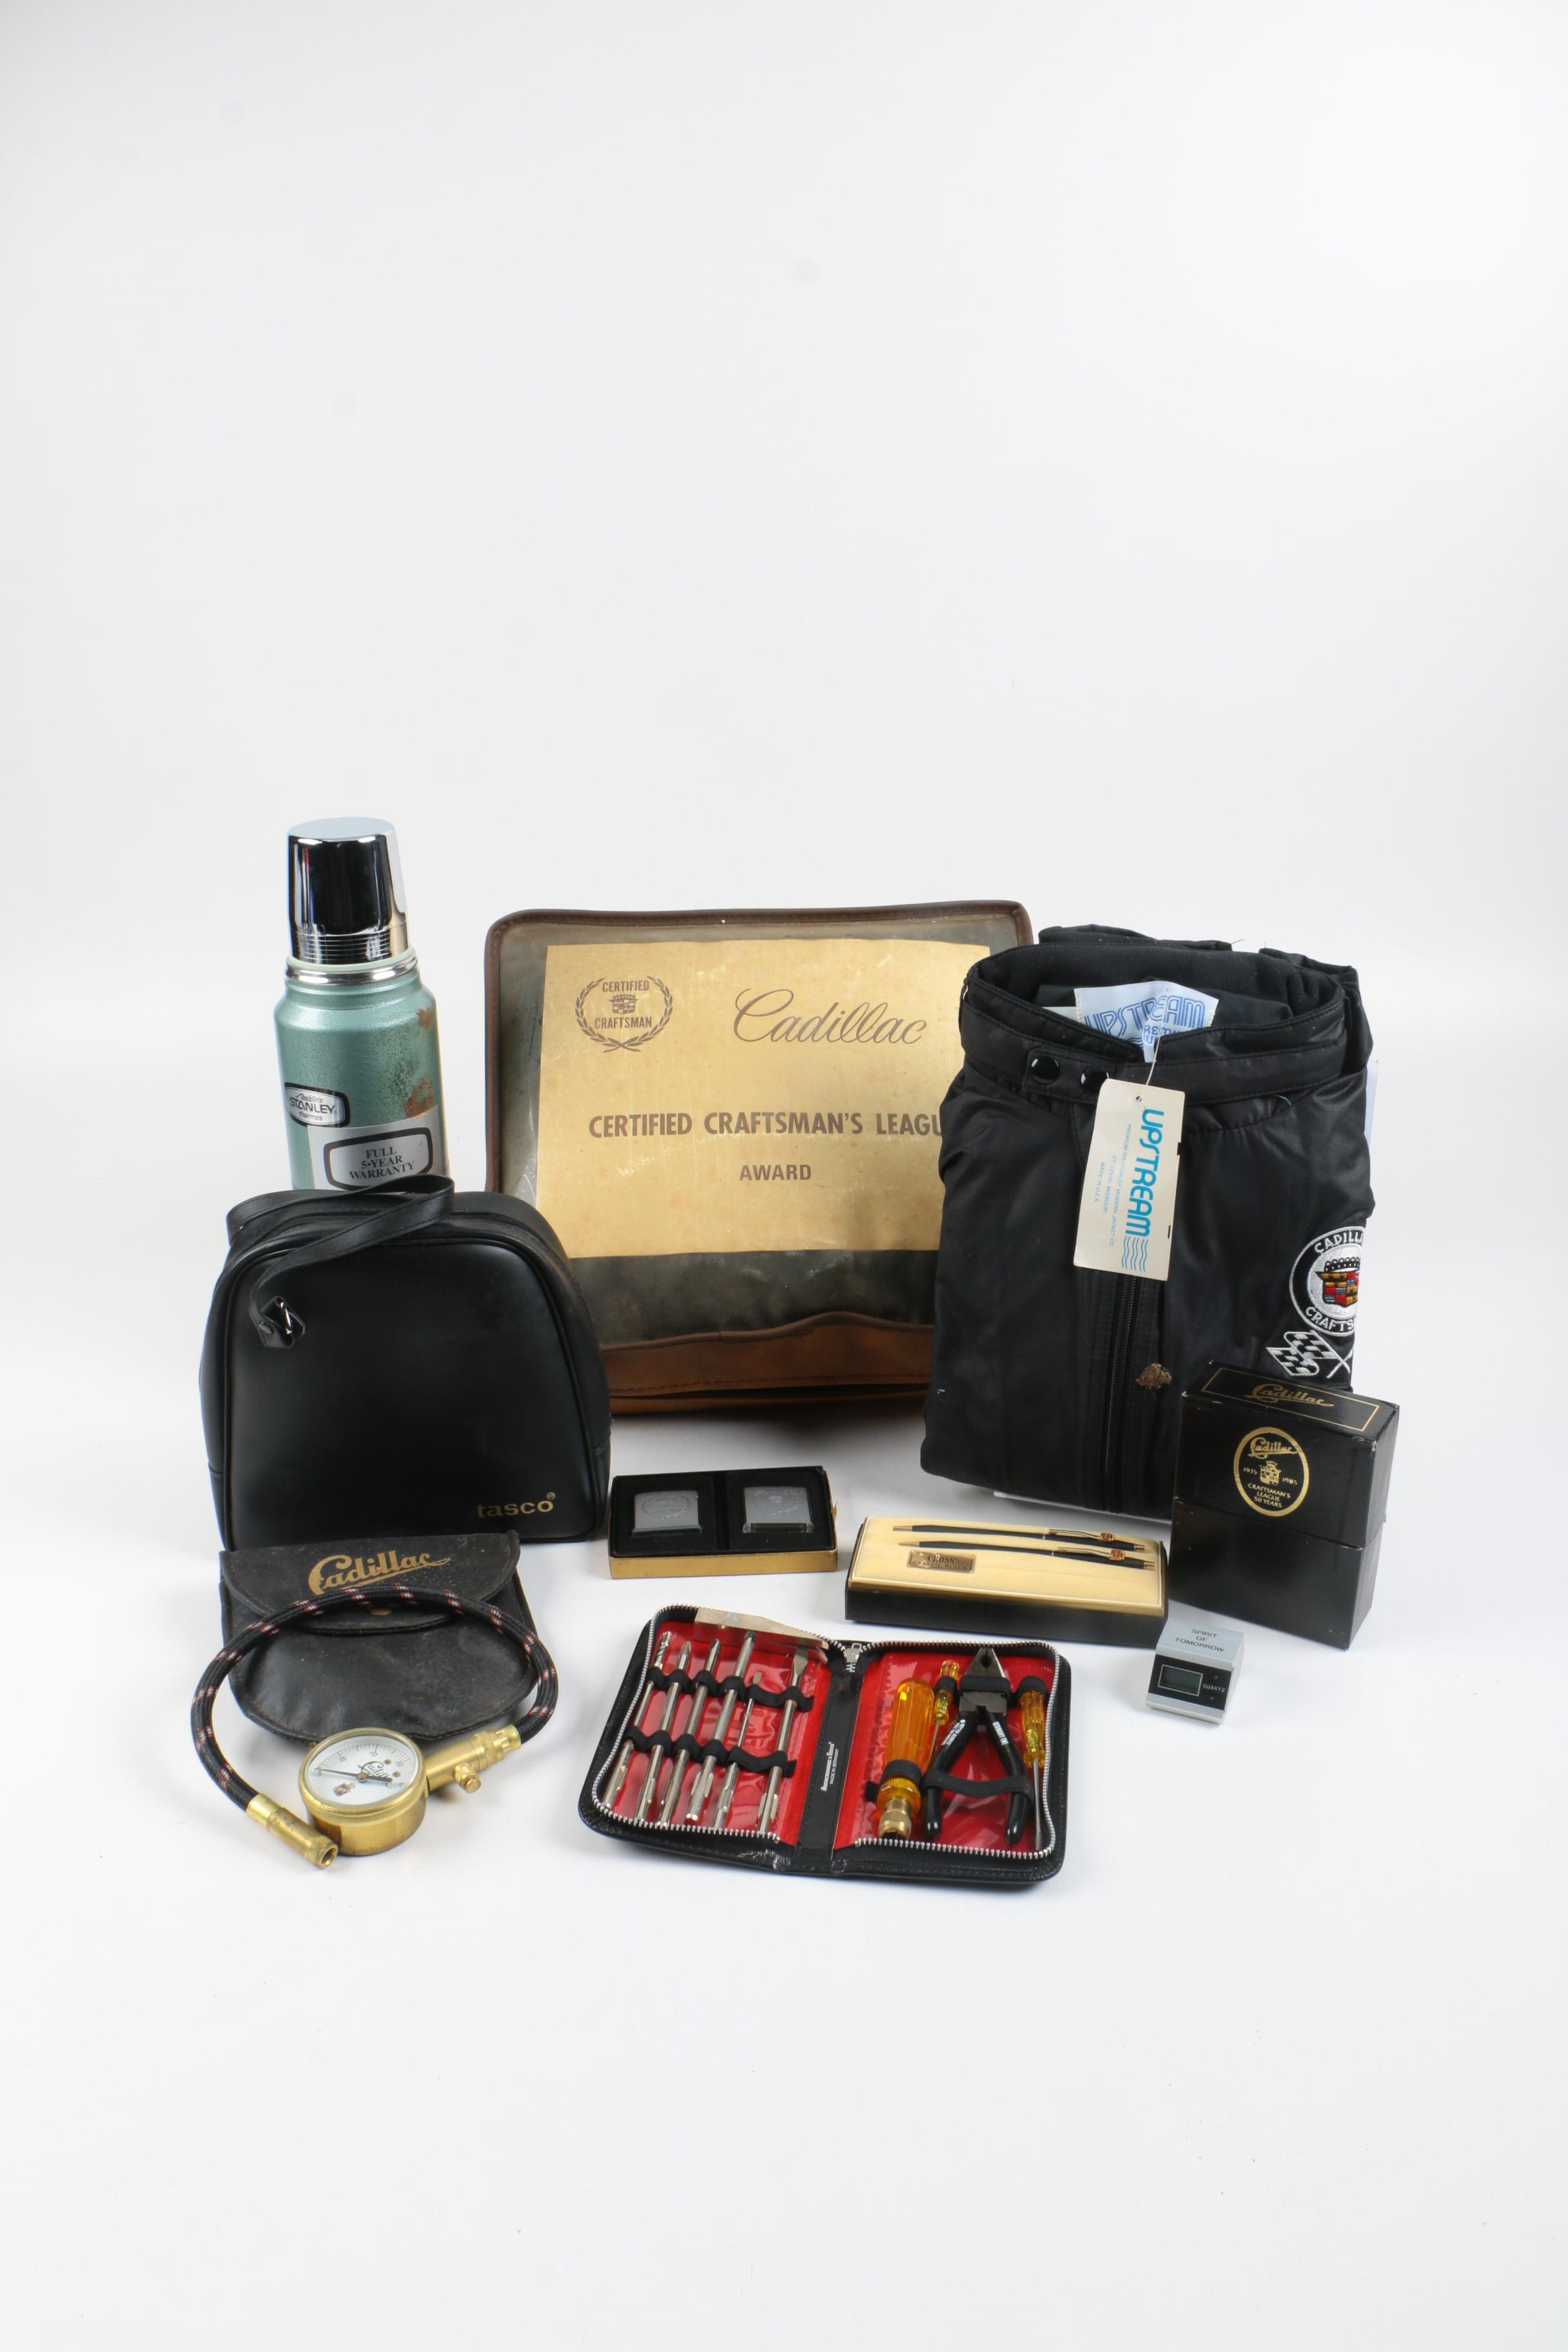 Cadillac Branded Items And More